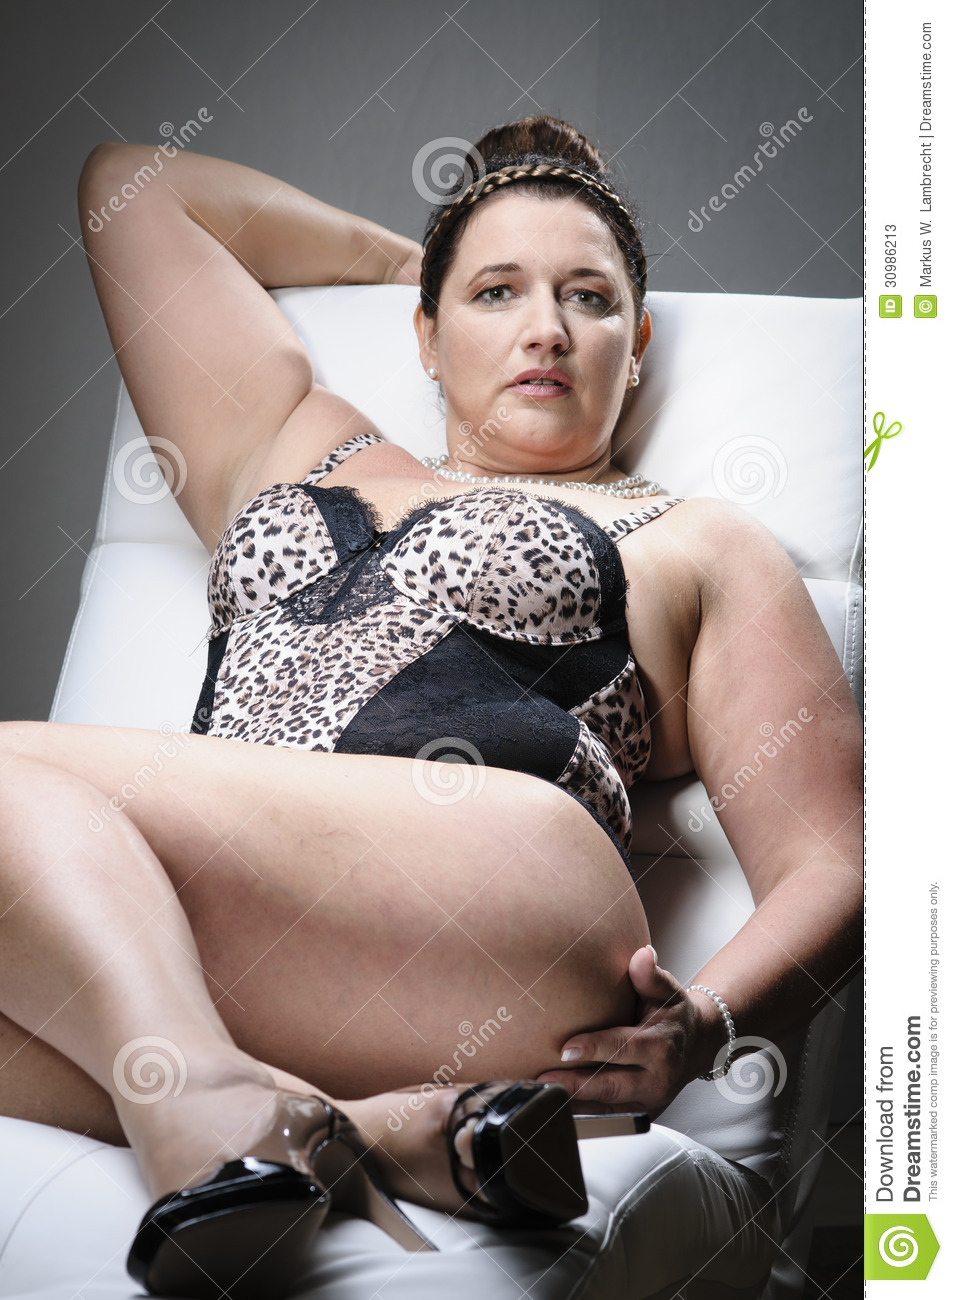 c9455ea67e6 Beautiful plus size woman stock image. Image of interior - 30986213